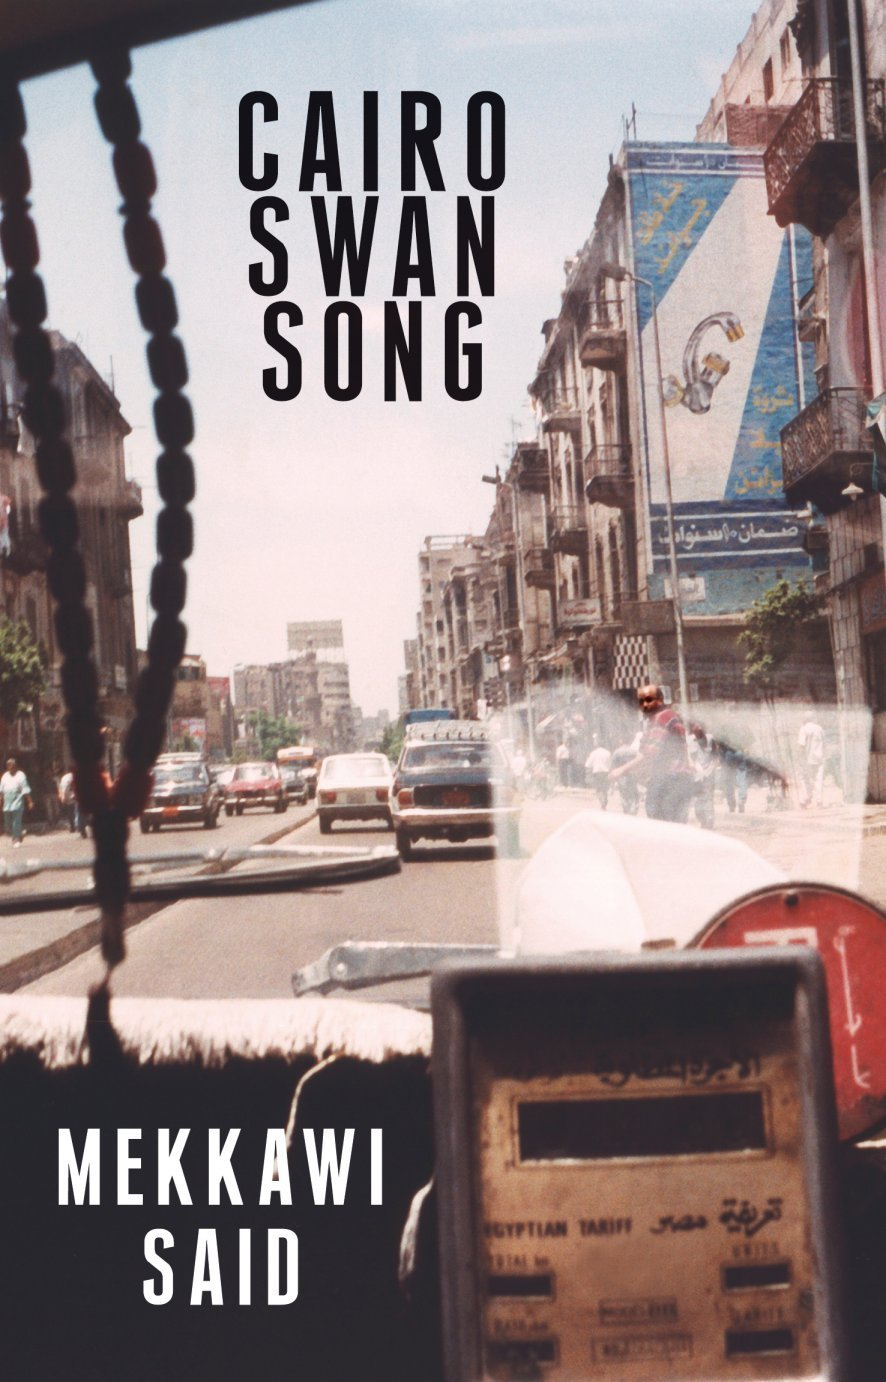 Cairo Swan Song by Mekkawi Said Published by Arabia Books in 2011